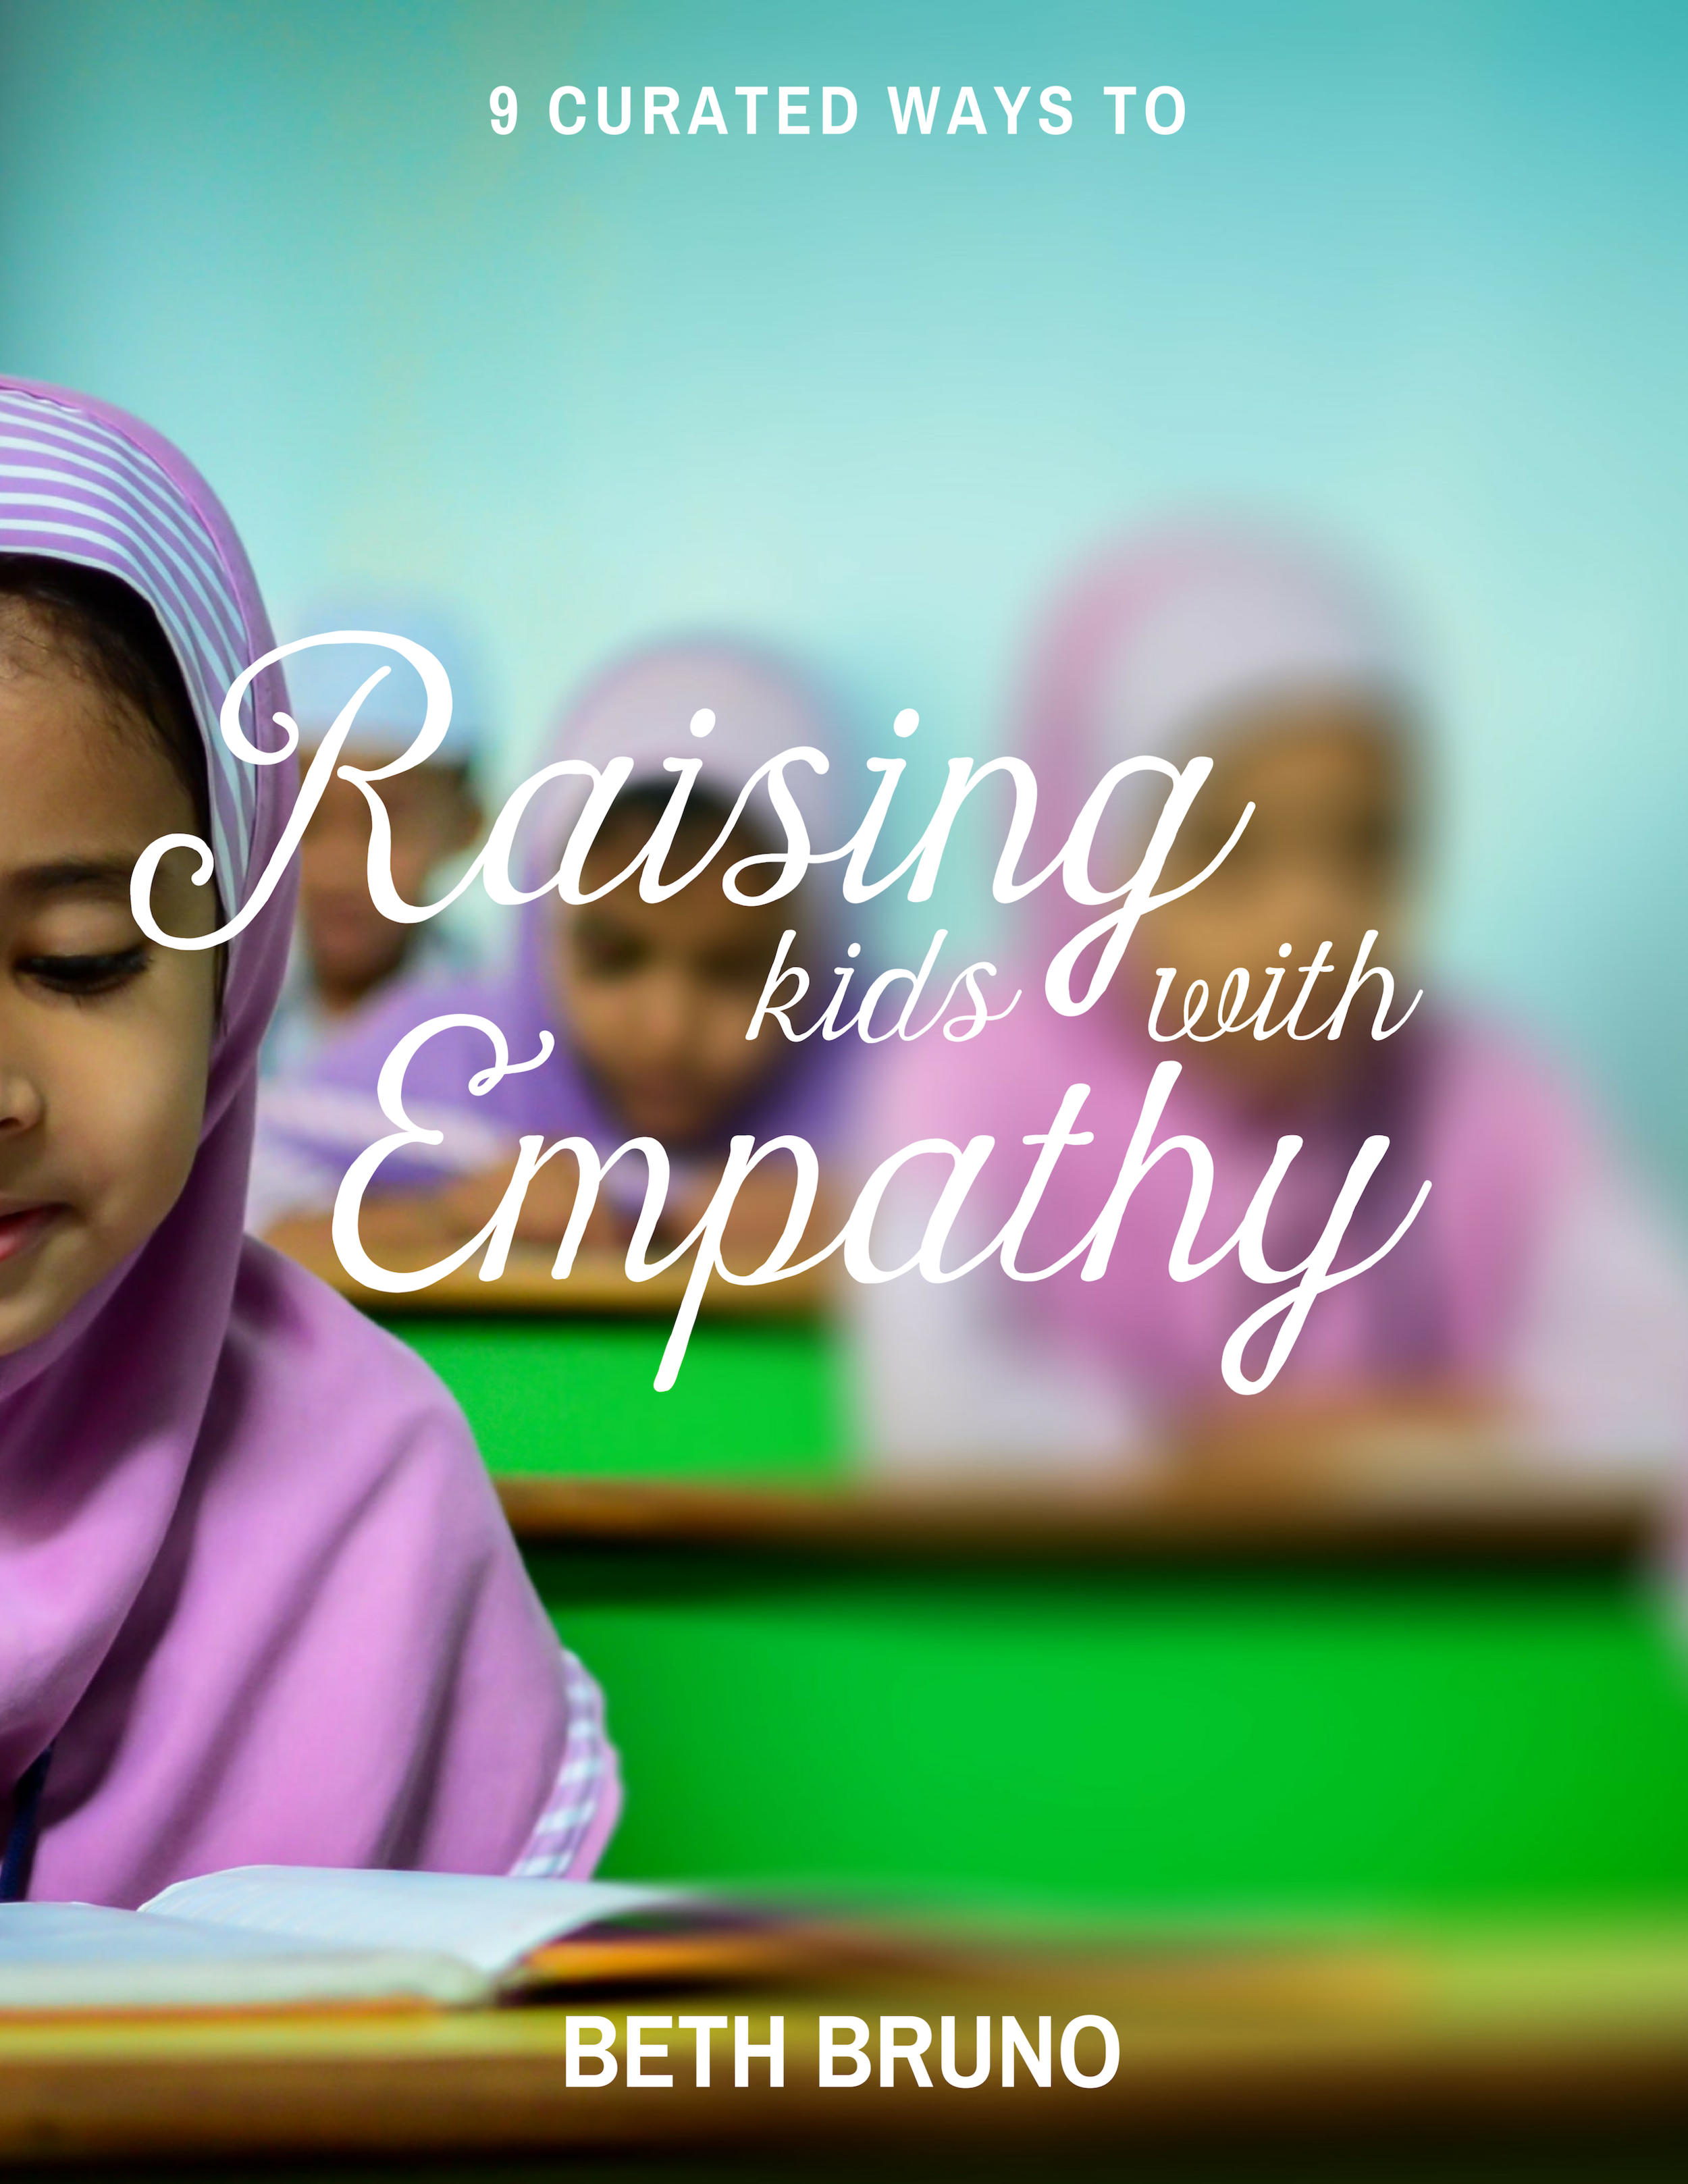 Empathy Cover Image Only.png